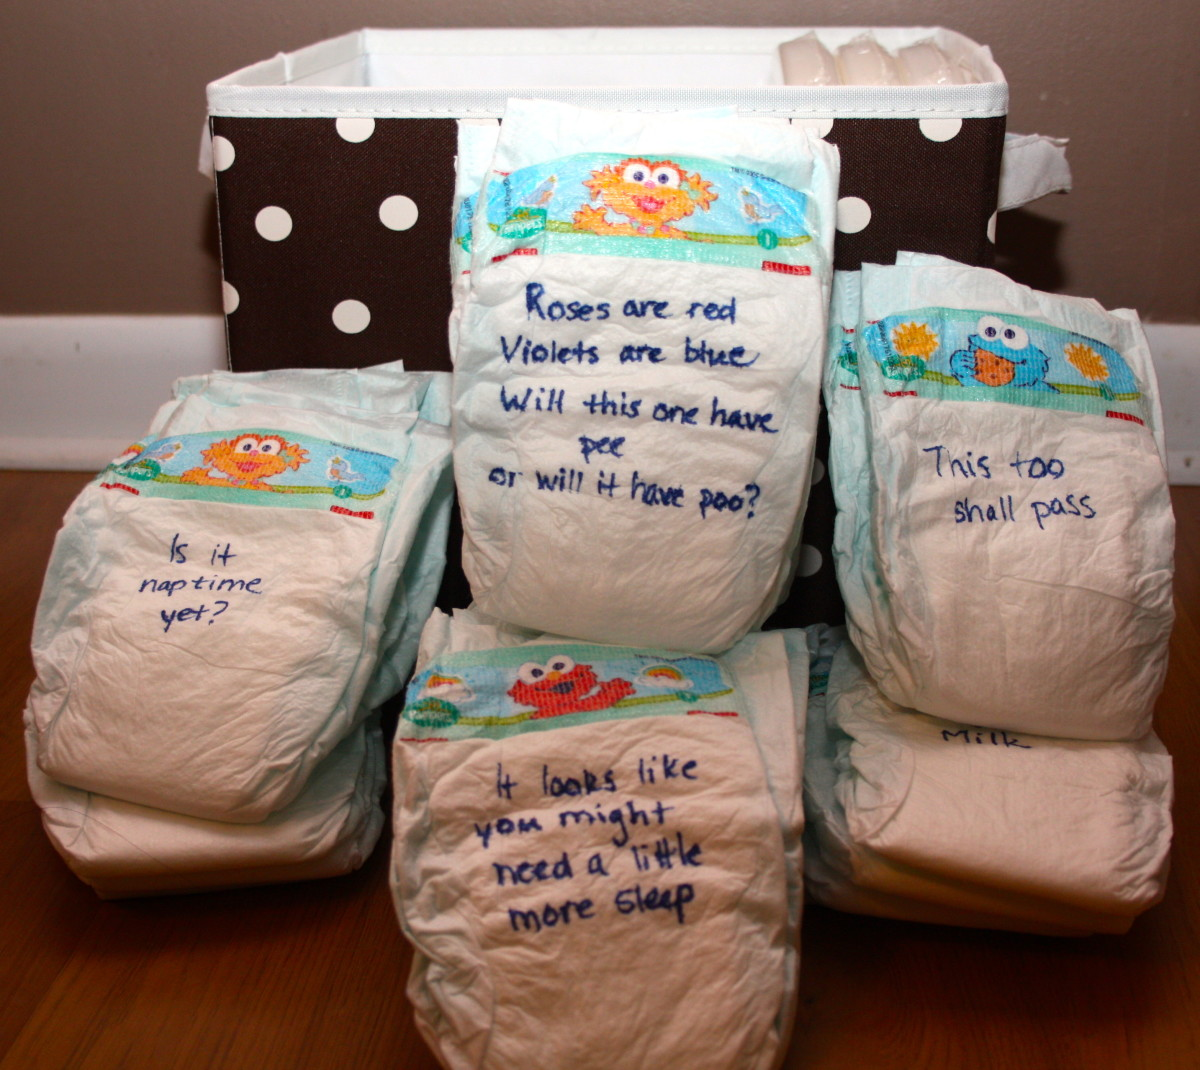 entertaining-and-practical-baby-shower-game-messages-on-diapers